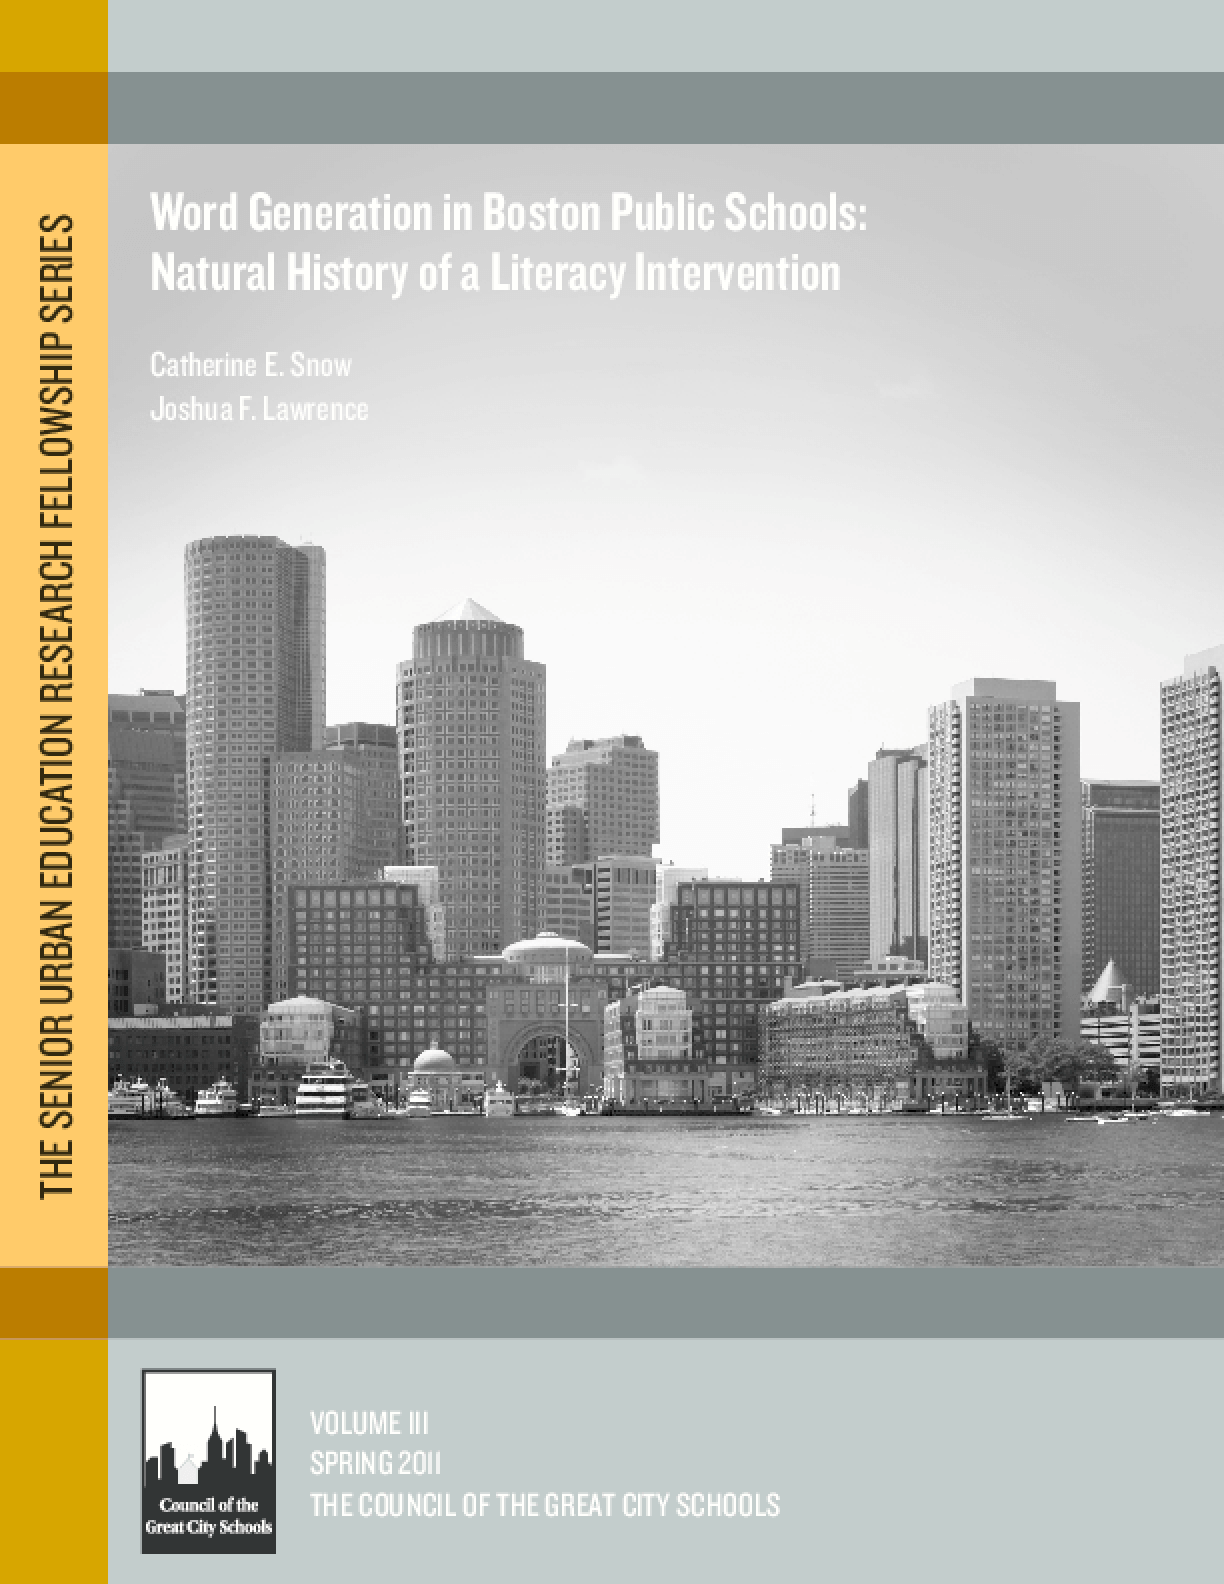 Word Generation in Boston Public Schools: Natural History of a Literacy Intervention